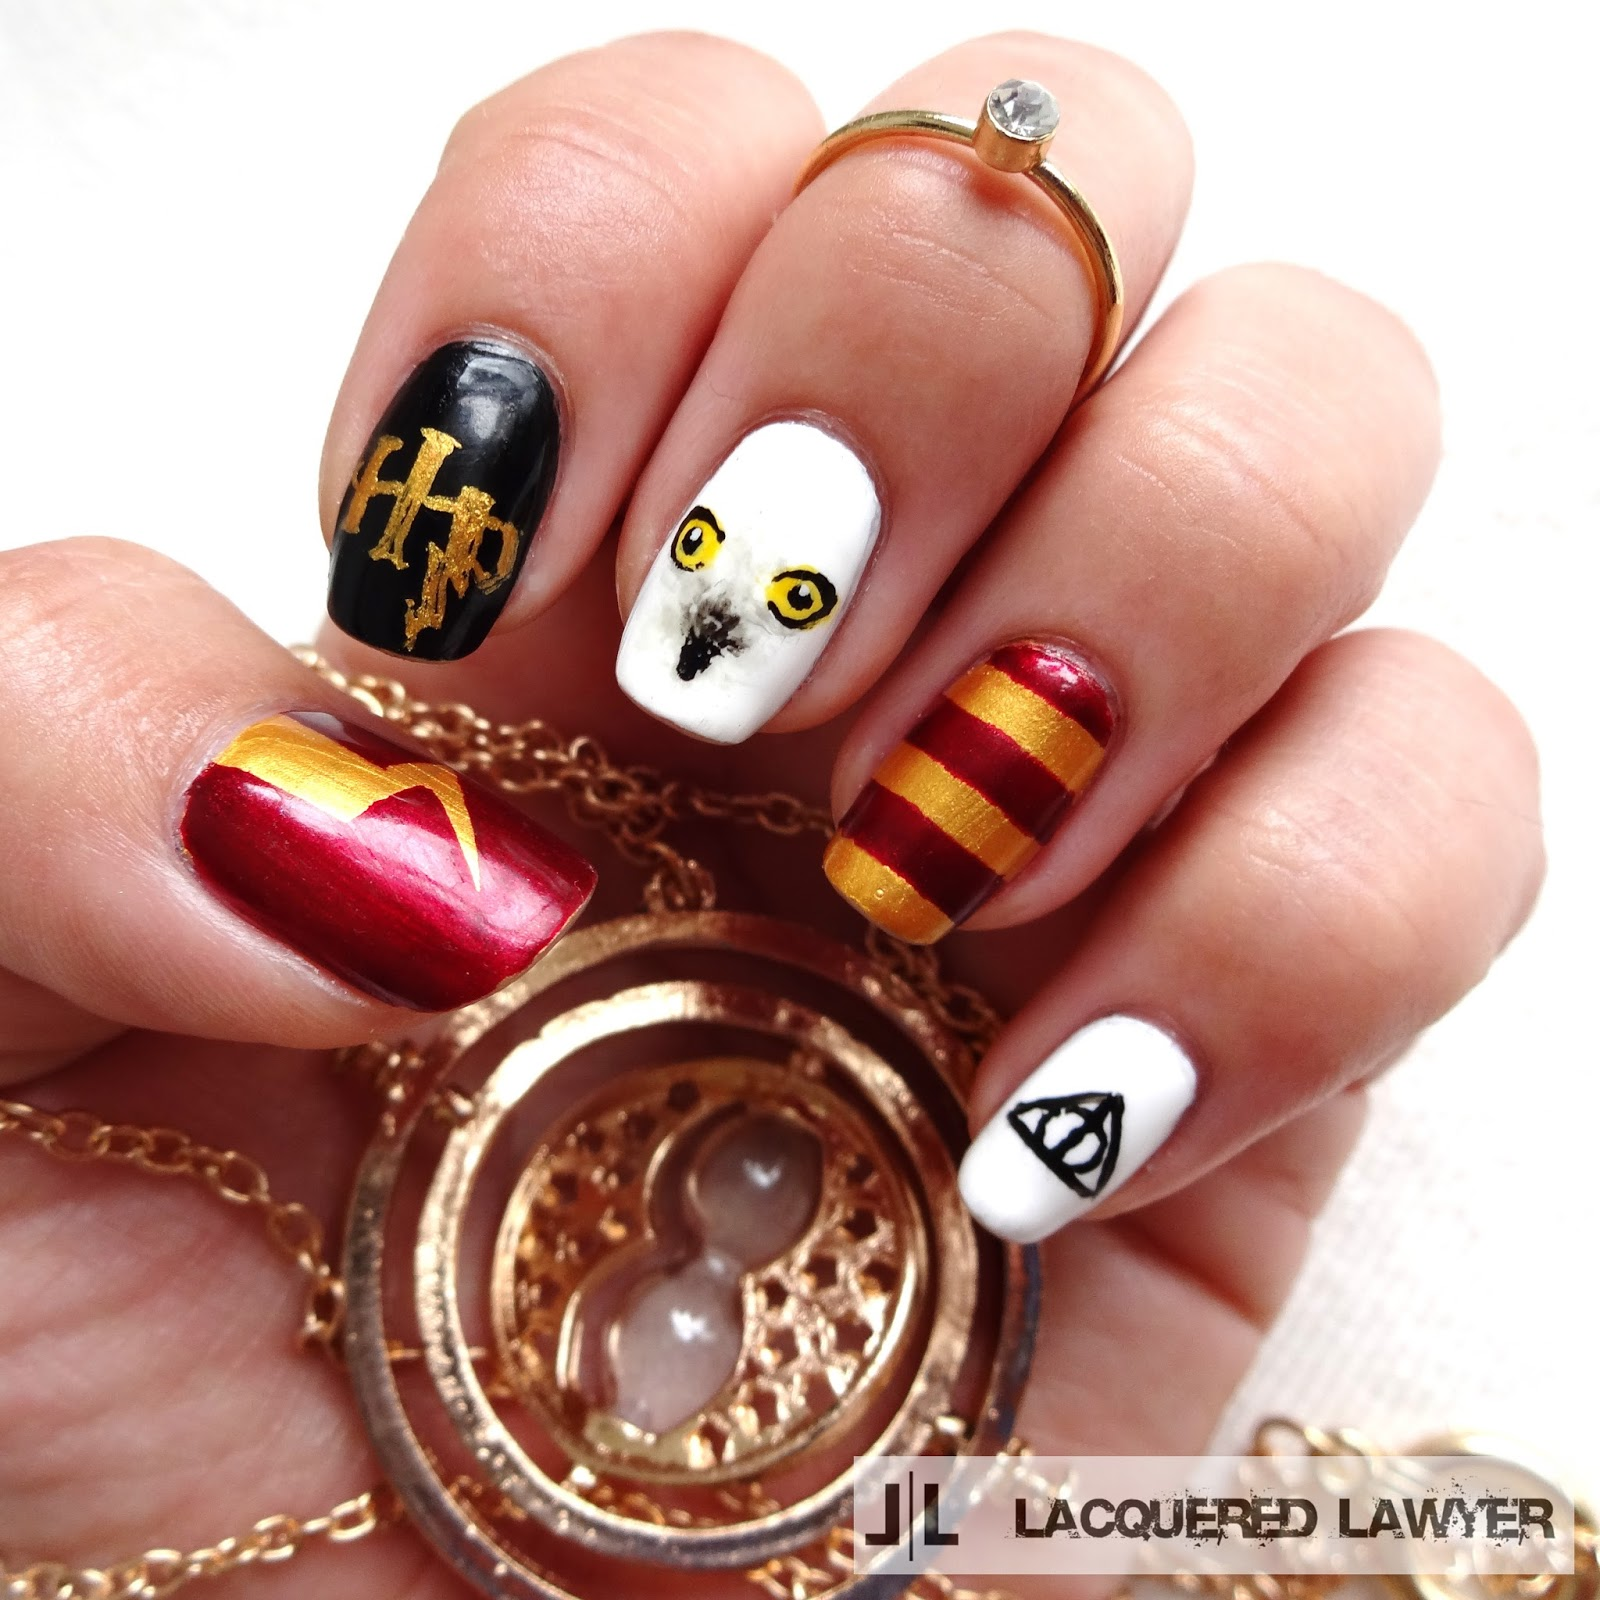 Lacquered Lawyer | Nail Art Blog: September 2014